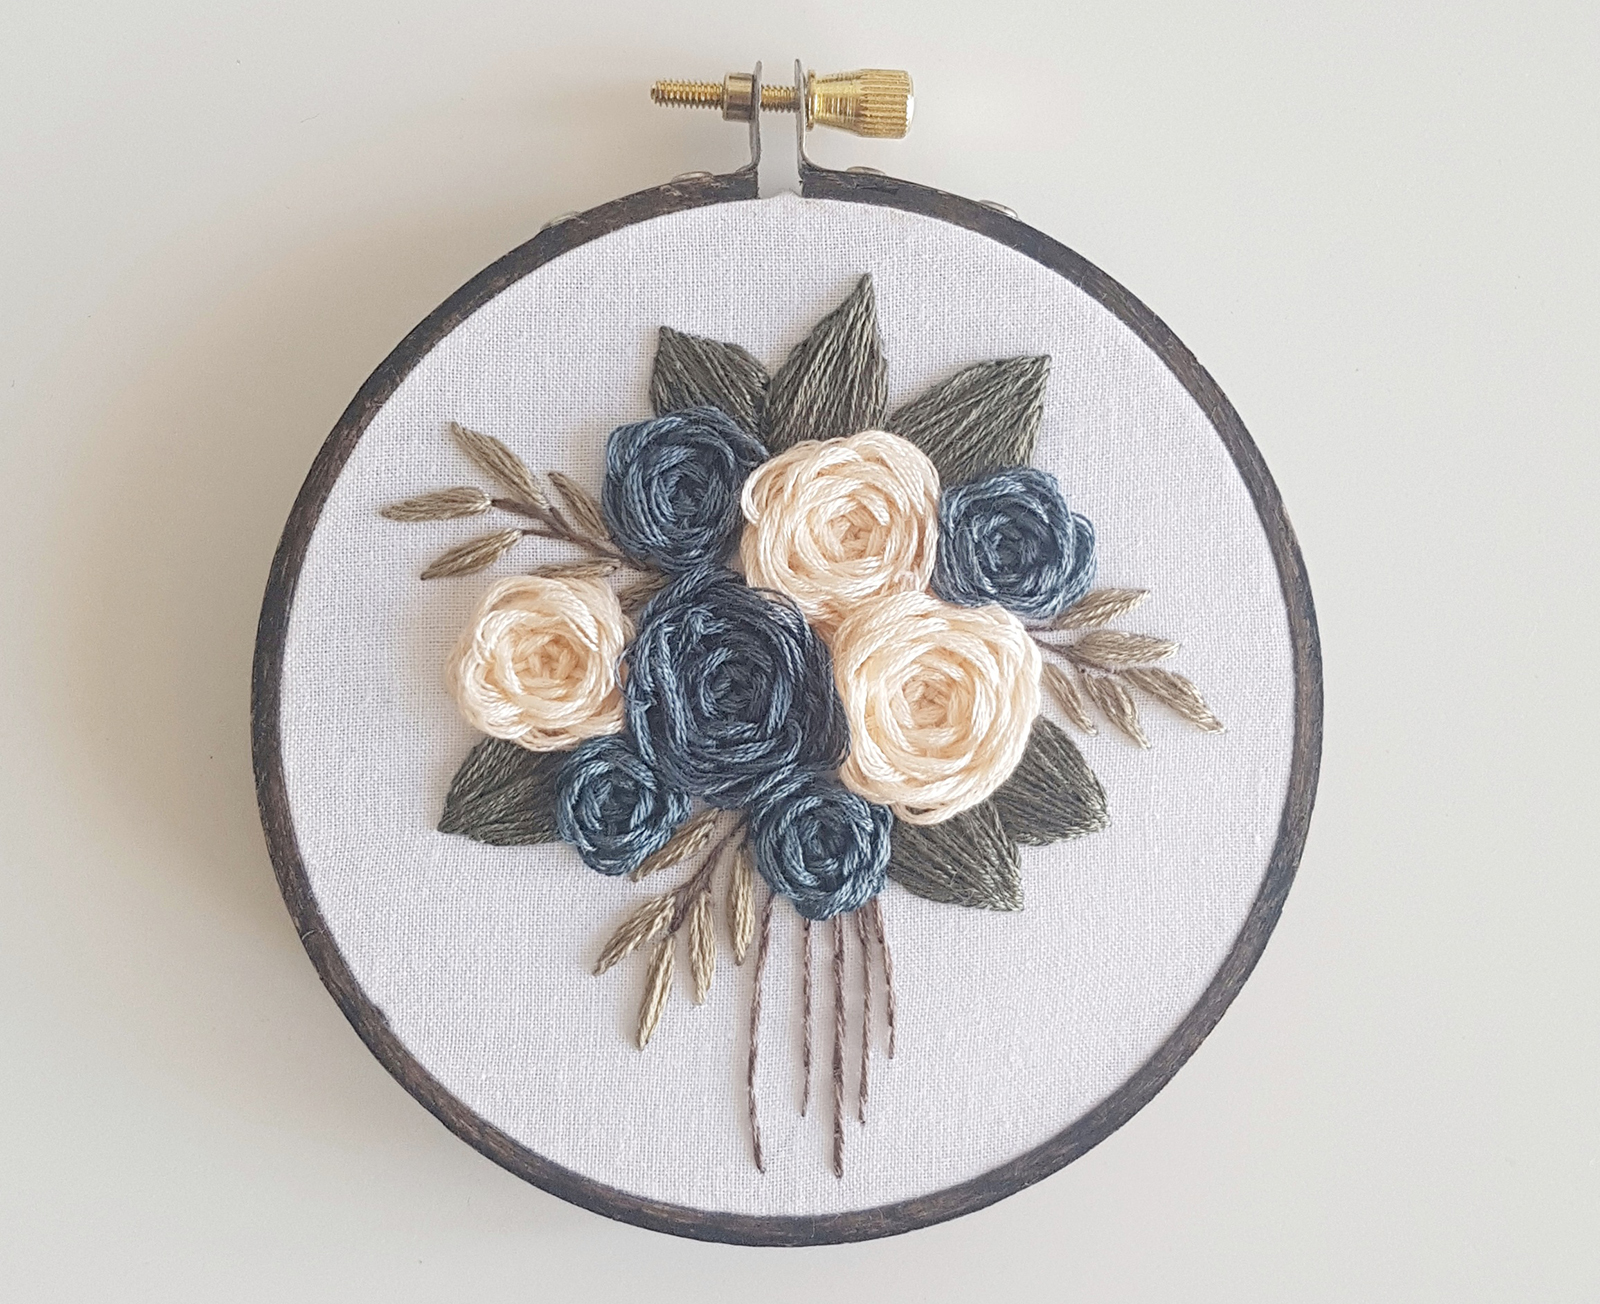 Thnlife Stitch Along Bouquet Laura Gushue